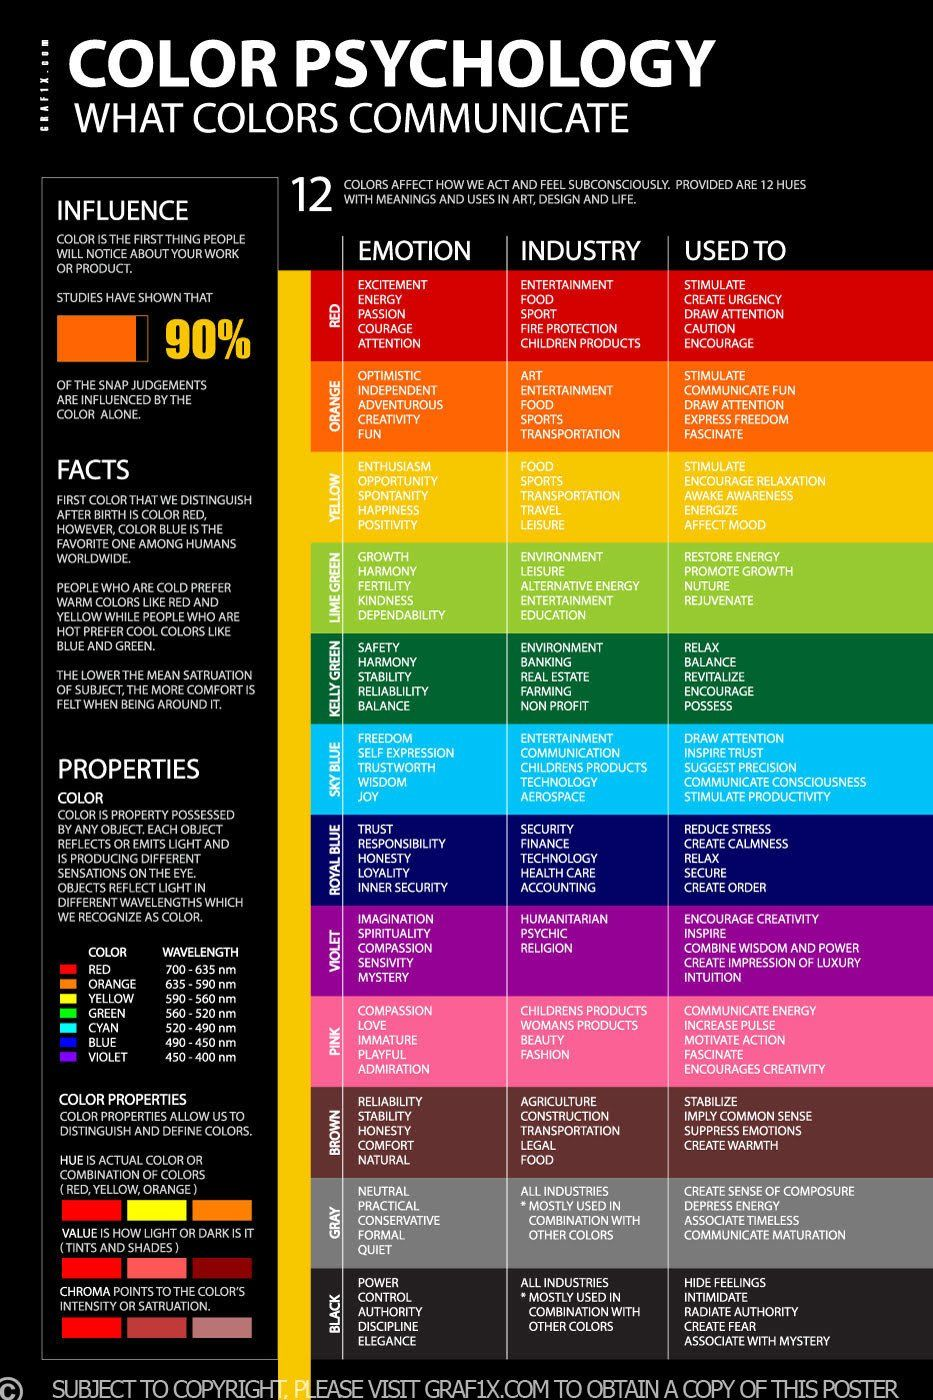 Color Meaning And Psychology Of Red Blue Green Yellow Orange Pink And Violet Colors Graf1x Com Color Psychology Color Meanings Psychology Meaning